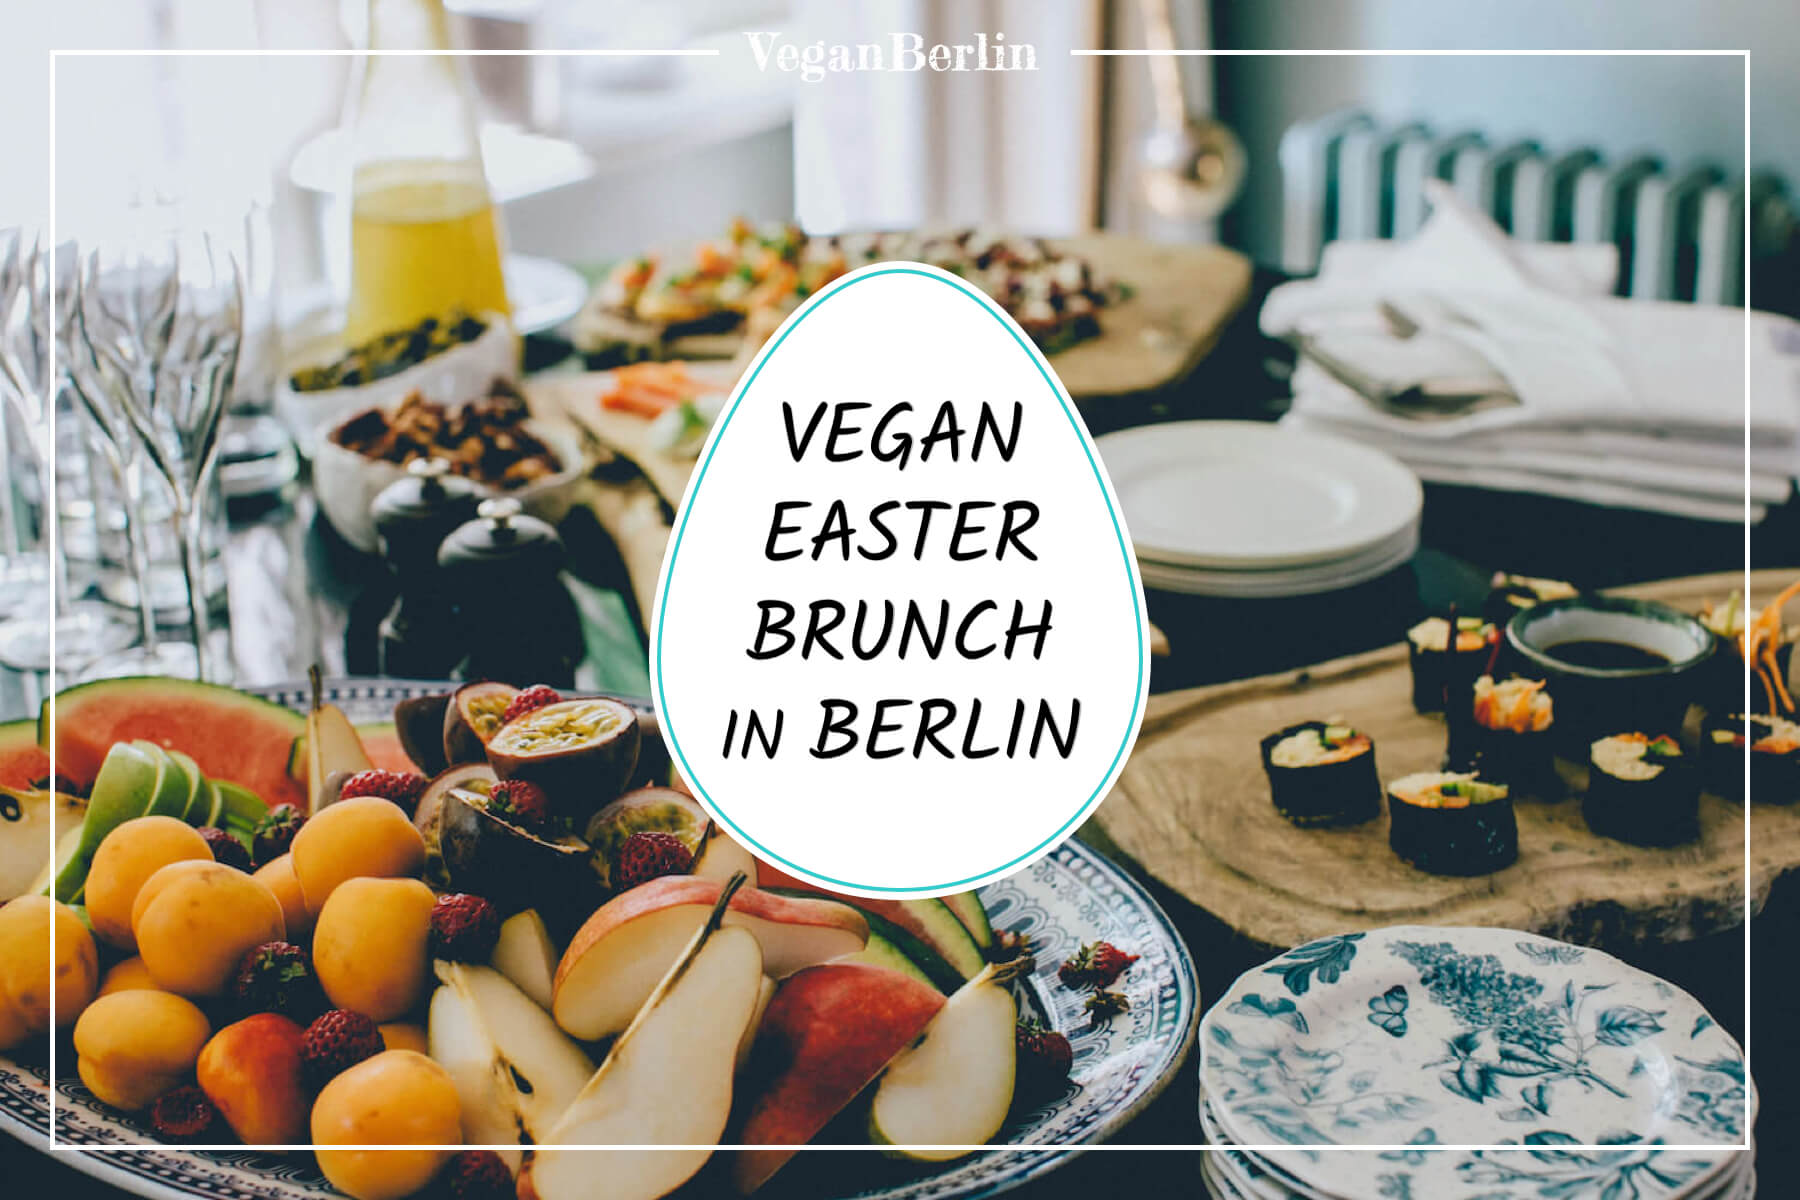 Vegan Easter Brunch locations in Berlin 2019